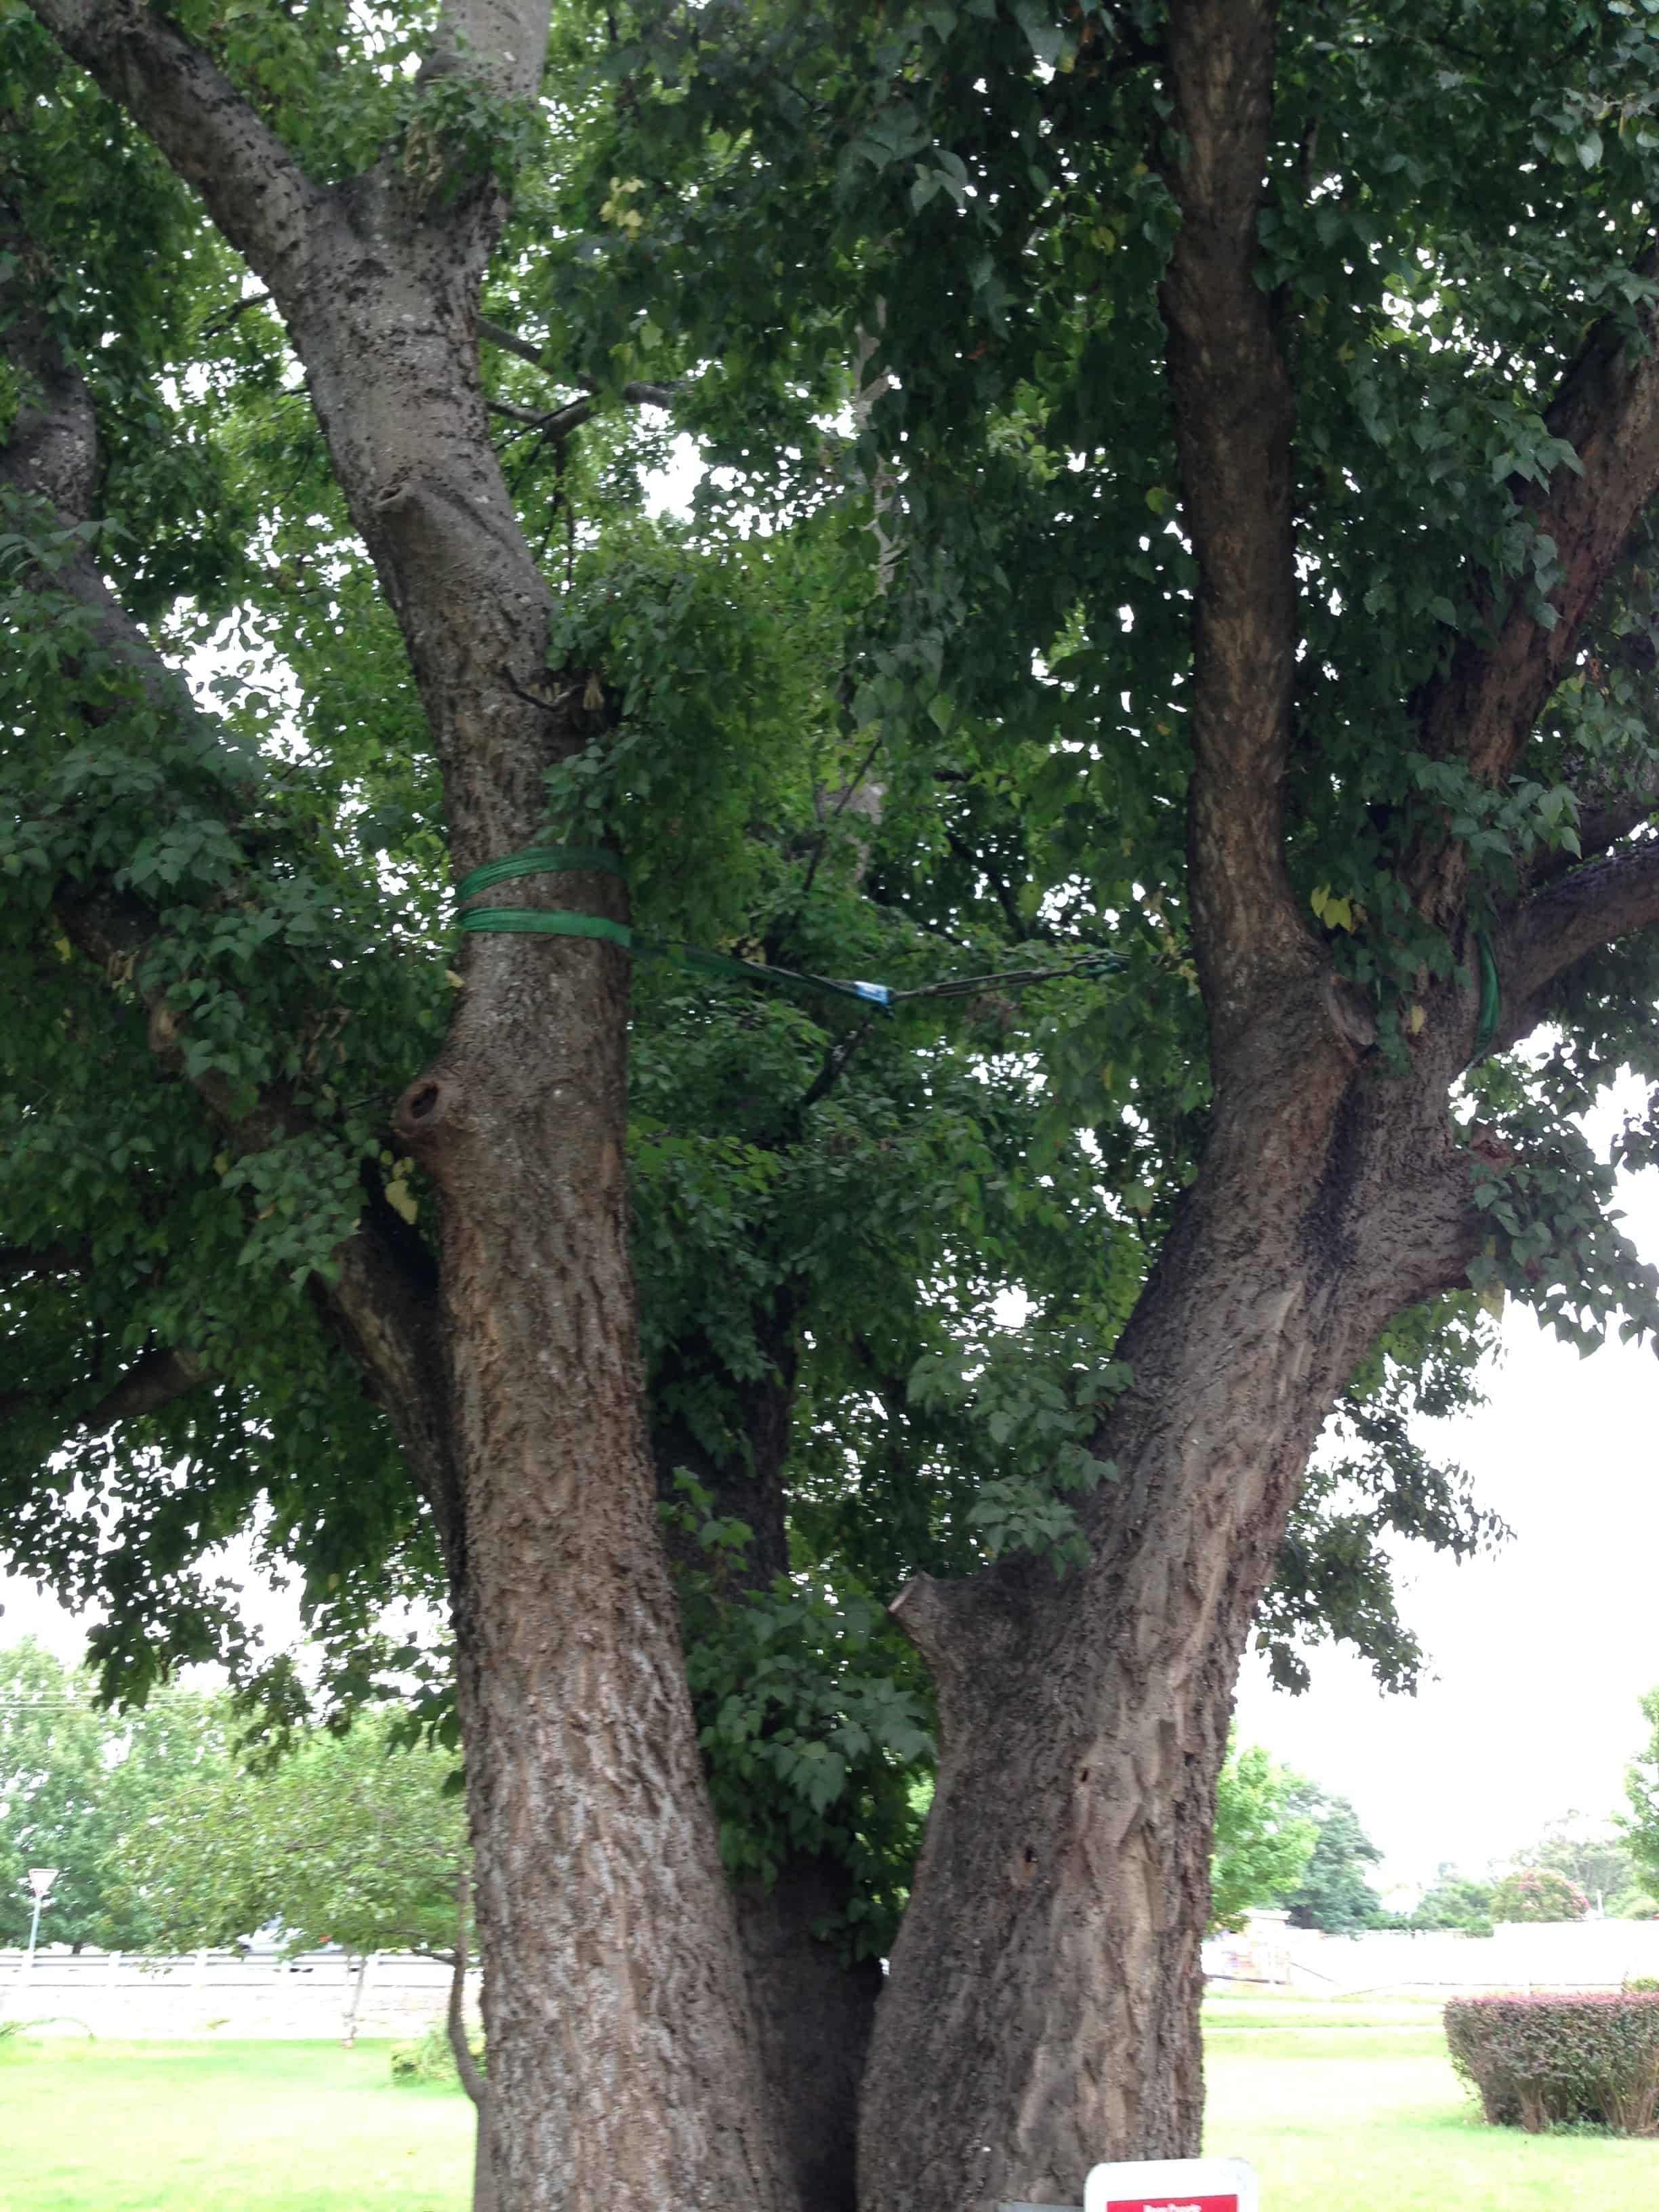 Canopy Tree - Tree Bracing Services & Other Tree Services | Canopy Tree | Arborists Sydney